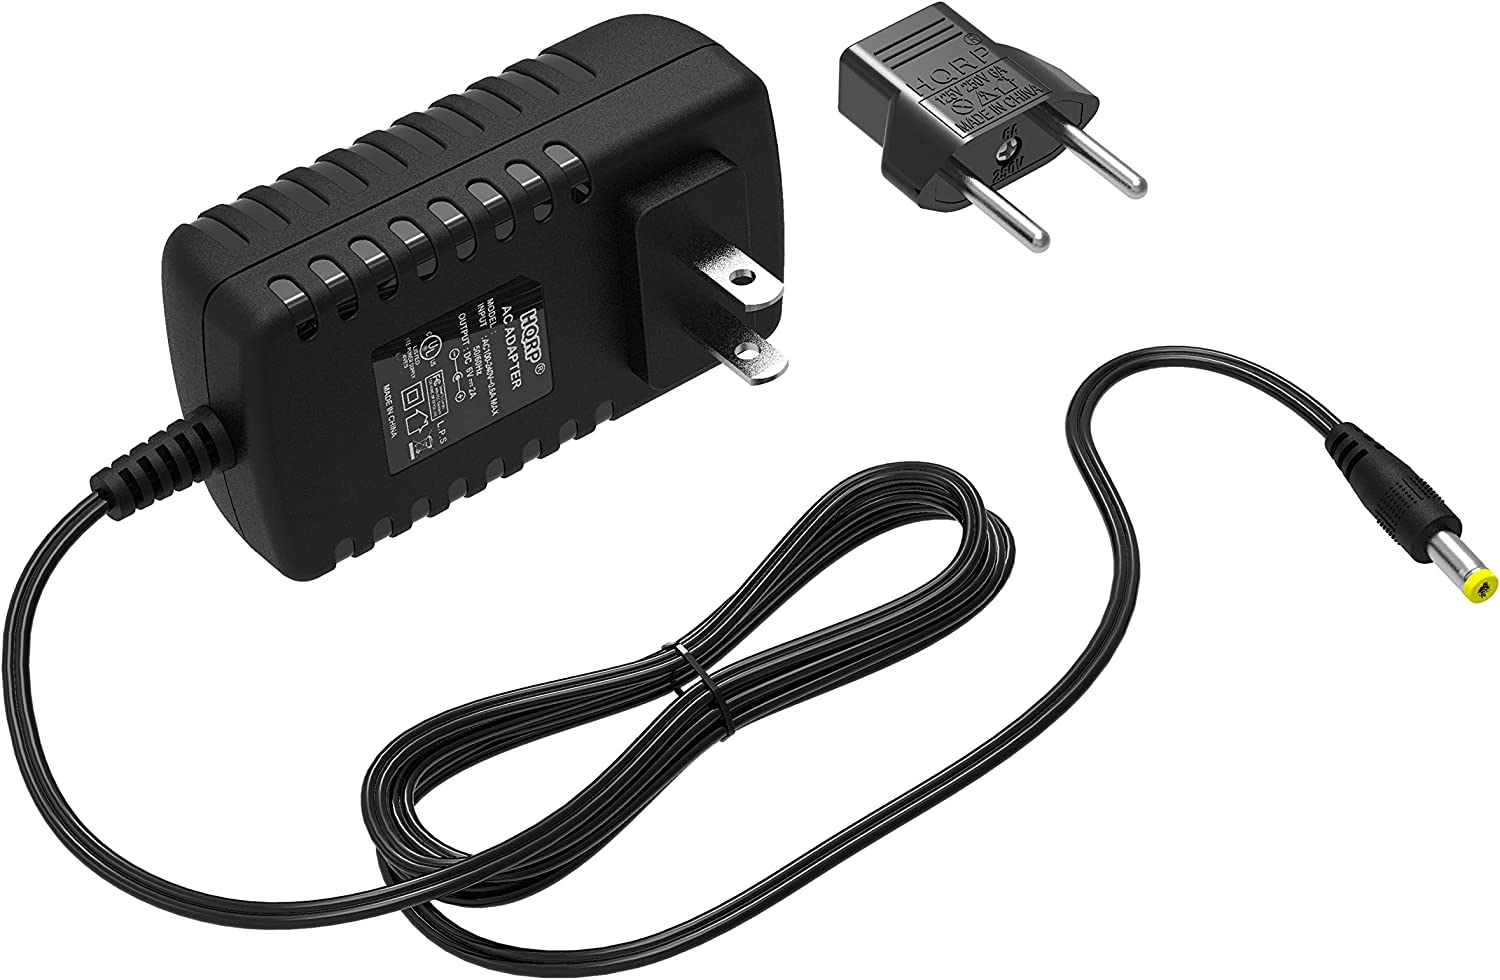 HQRP AC Adapter Compatible with 1Byone Driveway Patrol Alert Alarm System QH-0001, QH-0002, QH-0251 Battery Eliminator Power Supply Cord Adaptor [UL Listed] + Euro Plug Adapter